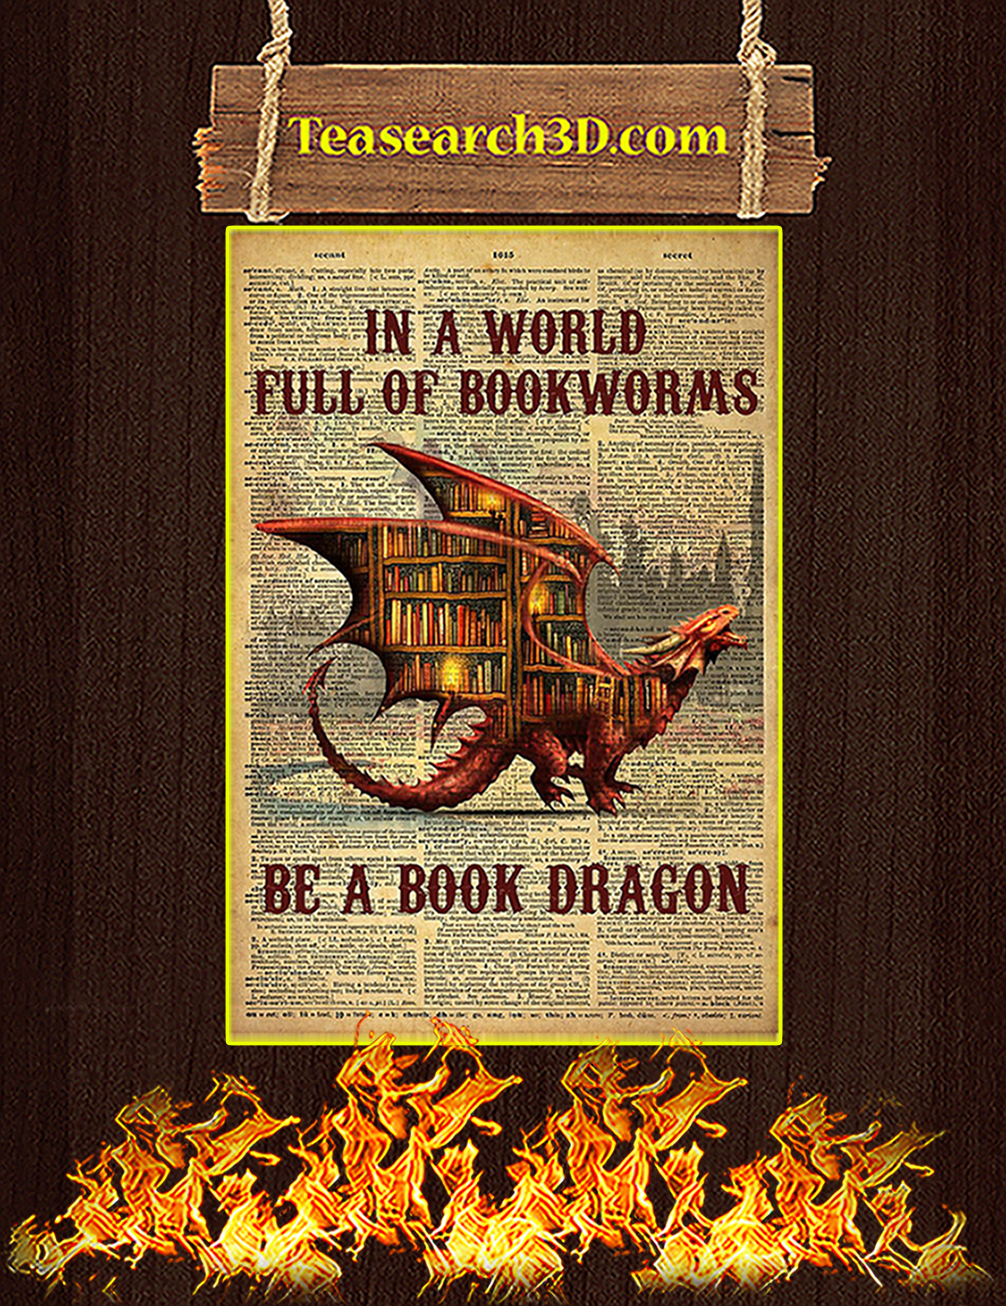 In a world full of bookworms be a book dragon poster